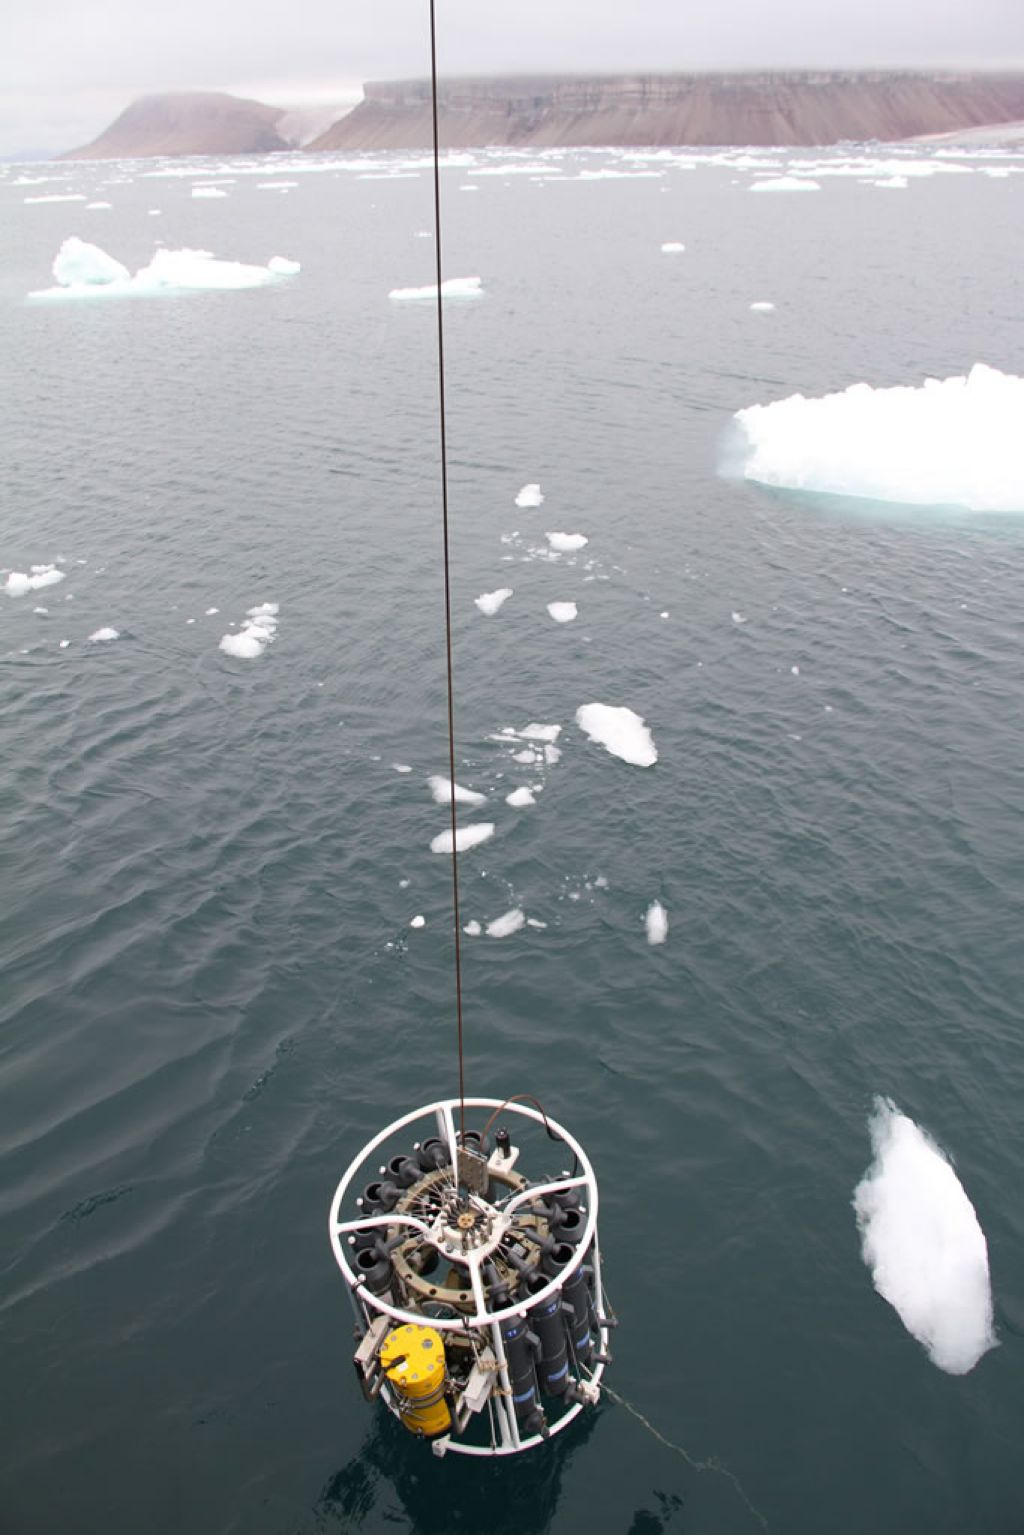 Taking samples from the water - © Agneta Fransson, Norwegian Polar Institute